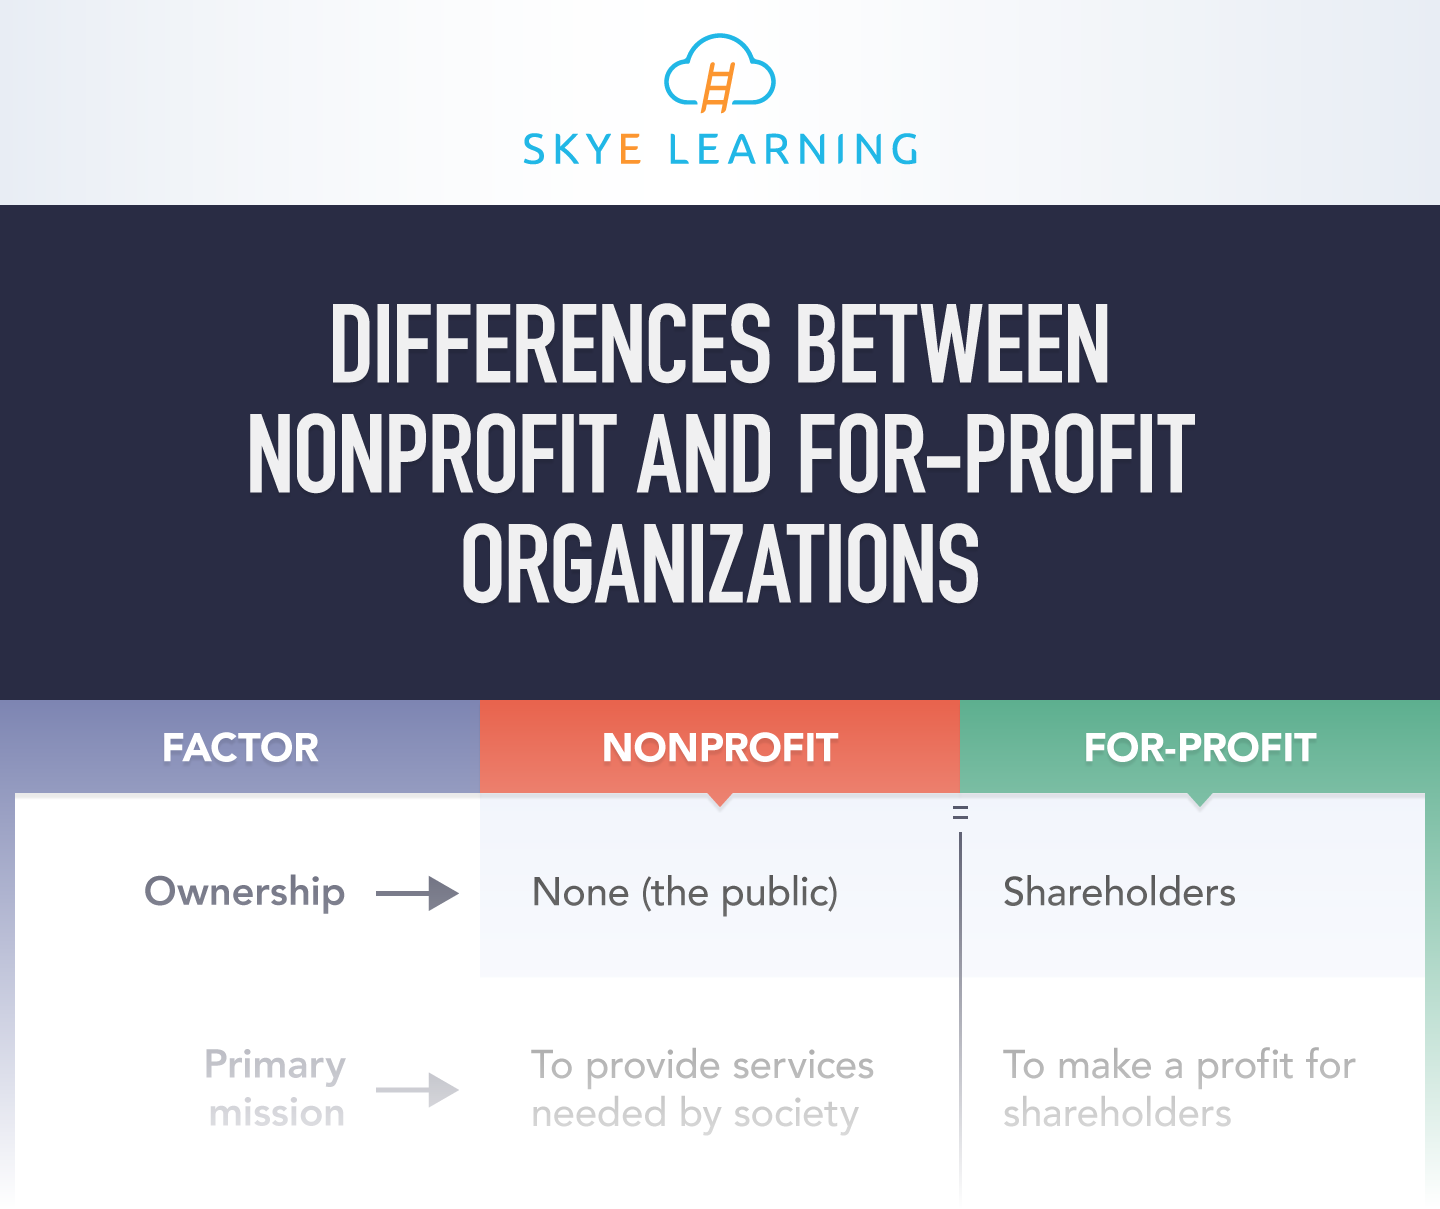 Differences-Between-Nonprofit-and-For-Profit-Organizations-SL-IG-TRUNCATED